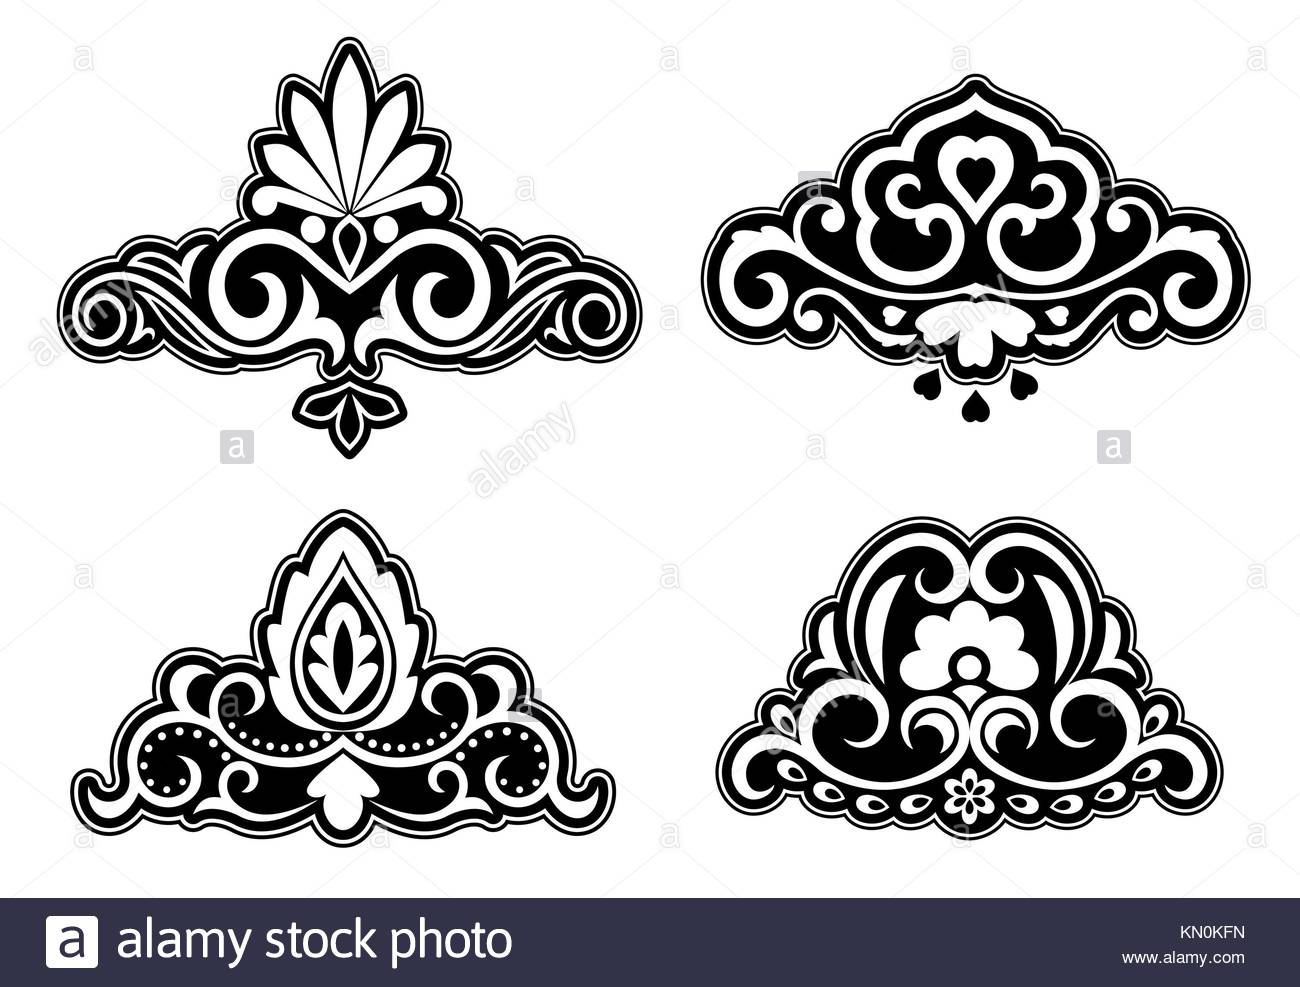 Flower Borders Black And White Stock Photos Images Alamy